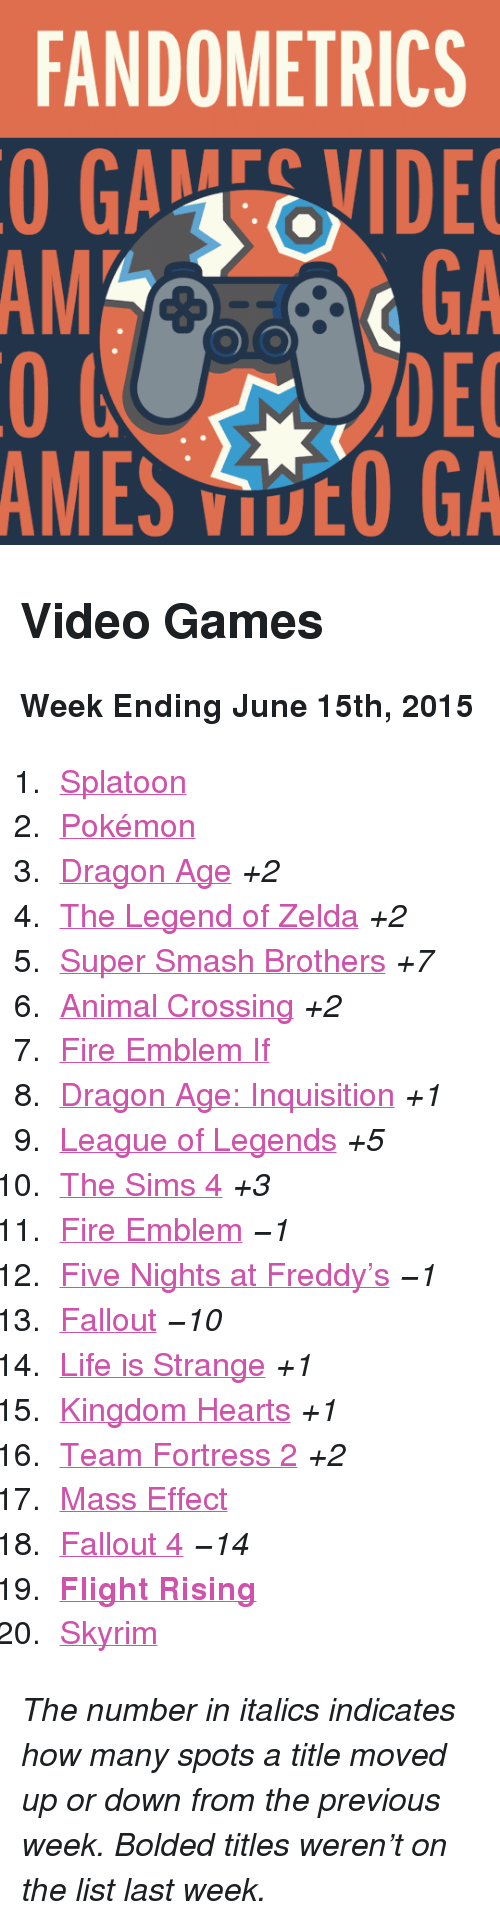 "Five Nights: FANDOMETRICS  GAEVIDE  GA  DEC  AMES VOO GA  AM <h2>Video Games</h2><p><b>Week Ending June 15th, 2015</b></p><ol><li><a href=""http://www.tumblr.com/search/splatoon"">Splatoon</a></li>  <li><a href=""http://www.tumblr.com/search/pokemon"">Pokémon</a></li>  <li><a href=""http://www.tumblr.com/search/dragon%20age"">Dragon Age</a> <i>+2</i></li>  <li><a href=""http://www.tumblr.com/search/legend%20of%20zelda"">The Legend of Zelda</a> <i>+2</i></li>  <li><a href=""http://www.tumblr.com/search/super%20smash%20bros"">Super Smash Brothers</a> <i>+7</i></li>  <li><a href=""http://www.tumblr.com/search/acnl"">Animal Crossing</a> <i>+2</i></li>  <li><a href=""http://www.tumblr.com/search/fire%20emblem%20if"">Fire Emblem If</a></li>  <li><a href=""http://www.tumblr.com/search/dragon%20age%20inquisition"">Dragon Age: Inquisition</a> <i>+1</i></li>  <li><a href=""http://www.tumblr.com/search/league%20of%20legends"">League of Legends</a> <i>+5</i></li>  <li><a href=""http://www.tumblr.com/search/sims%204"">The Sims 4</a> <i>+3</i></li>  <li><a href=""http://www.tumblr.com/search/fire%20emblem"">Fire Emblem</a> <i>−1</i></li>  <li><a href=""http://www.tumblr.com/search/five%20nights%20at%20freddy's"">Five Nights at Freddy&rsquo;s</a> <i>−1</i></li>  <li><a href=""http://www.tumblr.com/search/fallout"">Fallout</a> <i>−10</i></li>  <li><a href=""http://www.tumblr.com/search/life%20is%20strange"">Life is Strange</a> <i>+1</i></li>  <li><a href=""http://www.tumblr.com/search/kingdom%20hearts"">Kingdom Hearts</a> <i>+1</i></li>  <li><a href=""http://www.tumblr.com/search/tf2"">Team Fortress 2</a> <i>+2</i></li>  <li><a href=""http://www.tumblr.com/search/mass%20effect"">Mass Effect</a></li>  <li><a href=""http://www.tumblr.com/search/fallout%204"">Fallout 4</a> <i>−14</i></li>  <li><a href=""http://www.tumblr.com/search/flight%20rising""><b>Flight Rising</b></a></li>  <li><a href=""http://www.tumblr.com/search/skyrim"">Skyrim</a></li></ol><p><i>The number in italics indicates how many spots a title moved up or down from the previous week. Bolded titles weren't on the list last week.</i></p>"